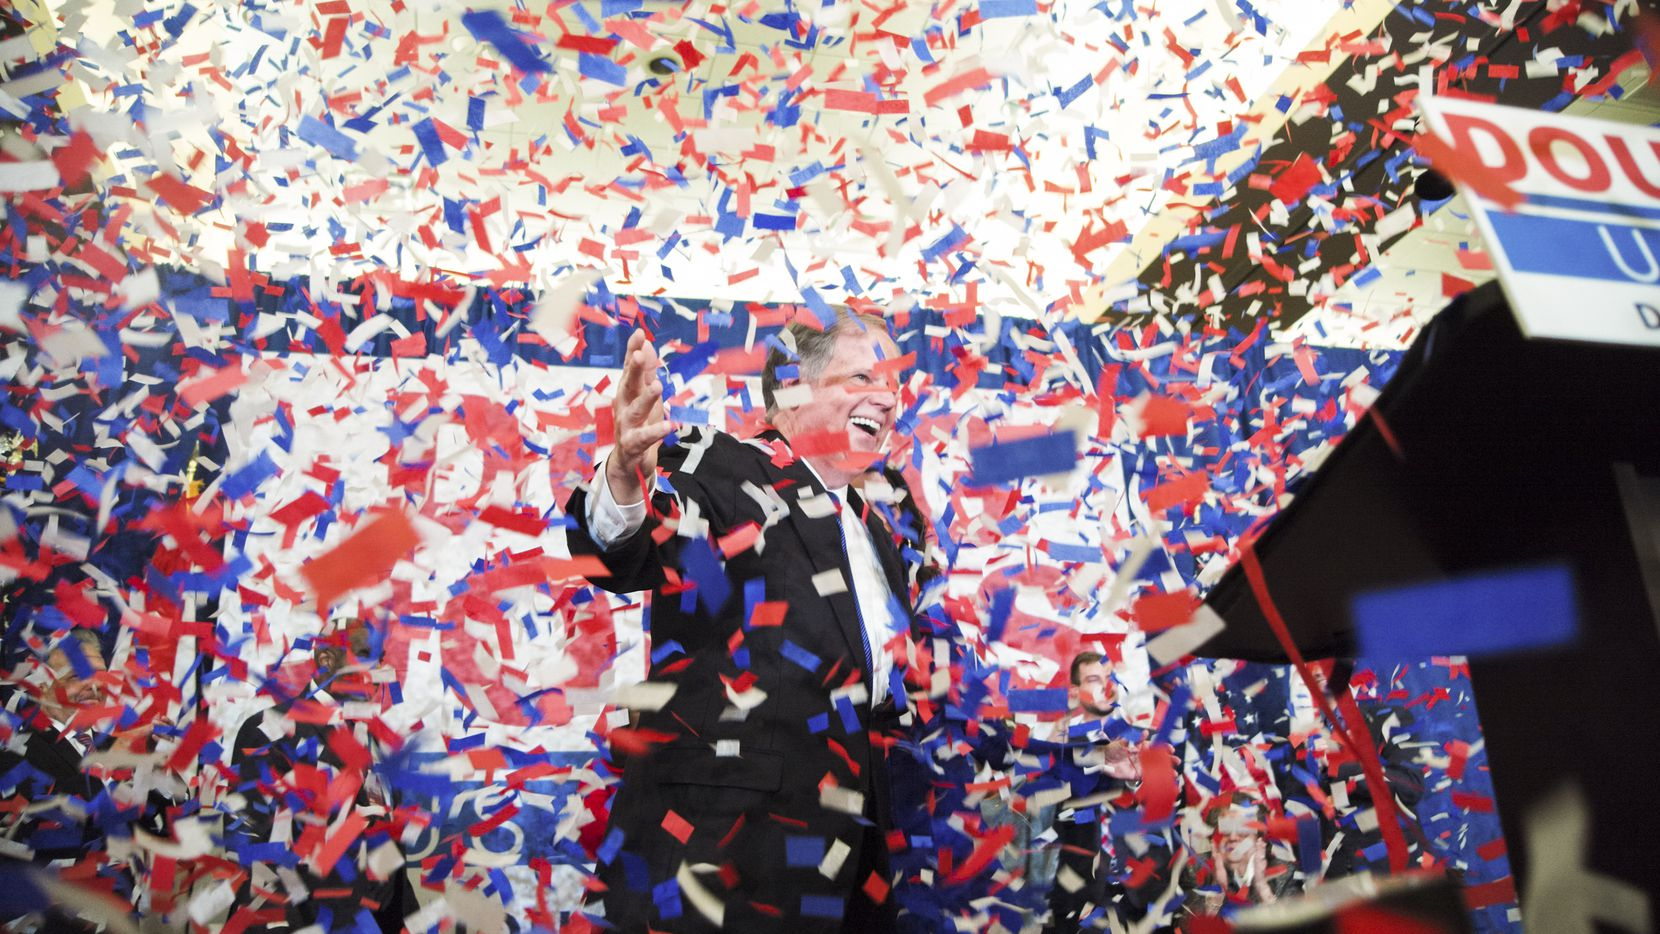 U. S. Sen.-elect Doug Jones celebrates during his watch party Tuesday in Birmingham, Ala.. Jones, a Democrat, defeated Roy Moore, the Republican candidate dogged by sexual misconduct accusations, in a special election to fill the United States Senate seat vacated by Jeff Sessions, now the attorney general.